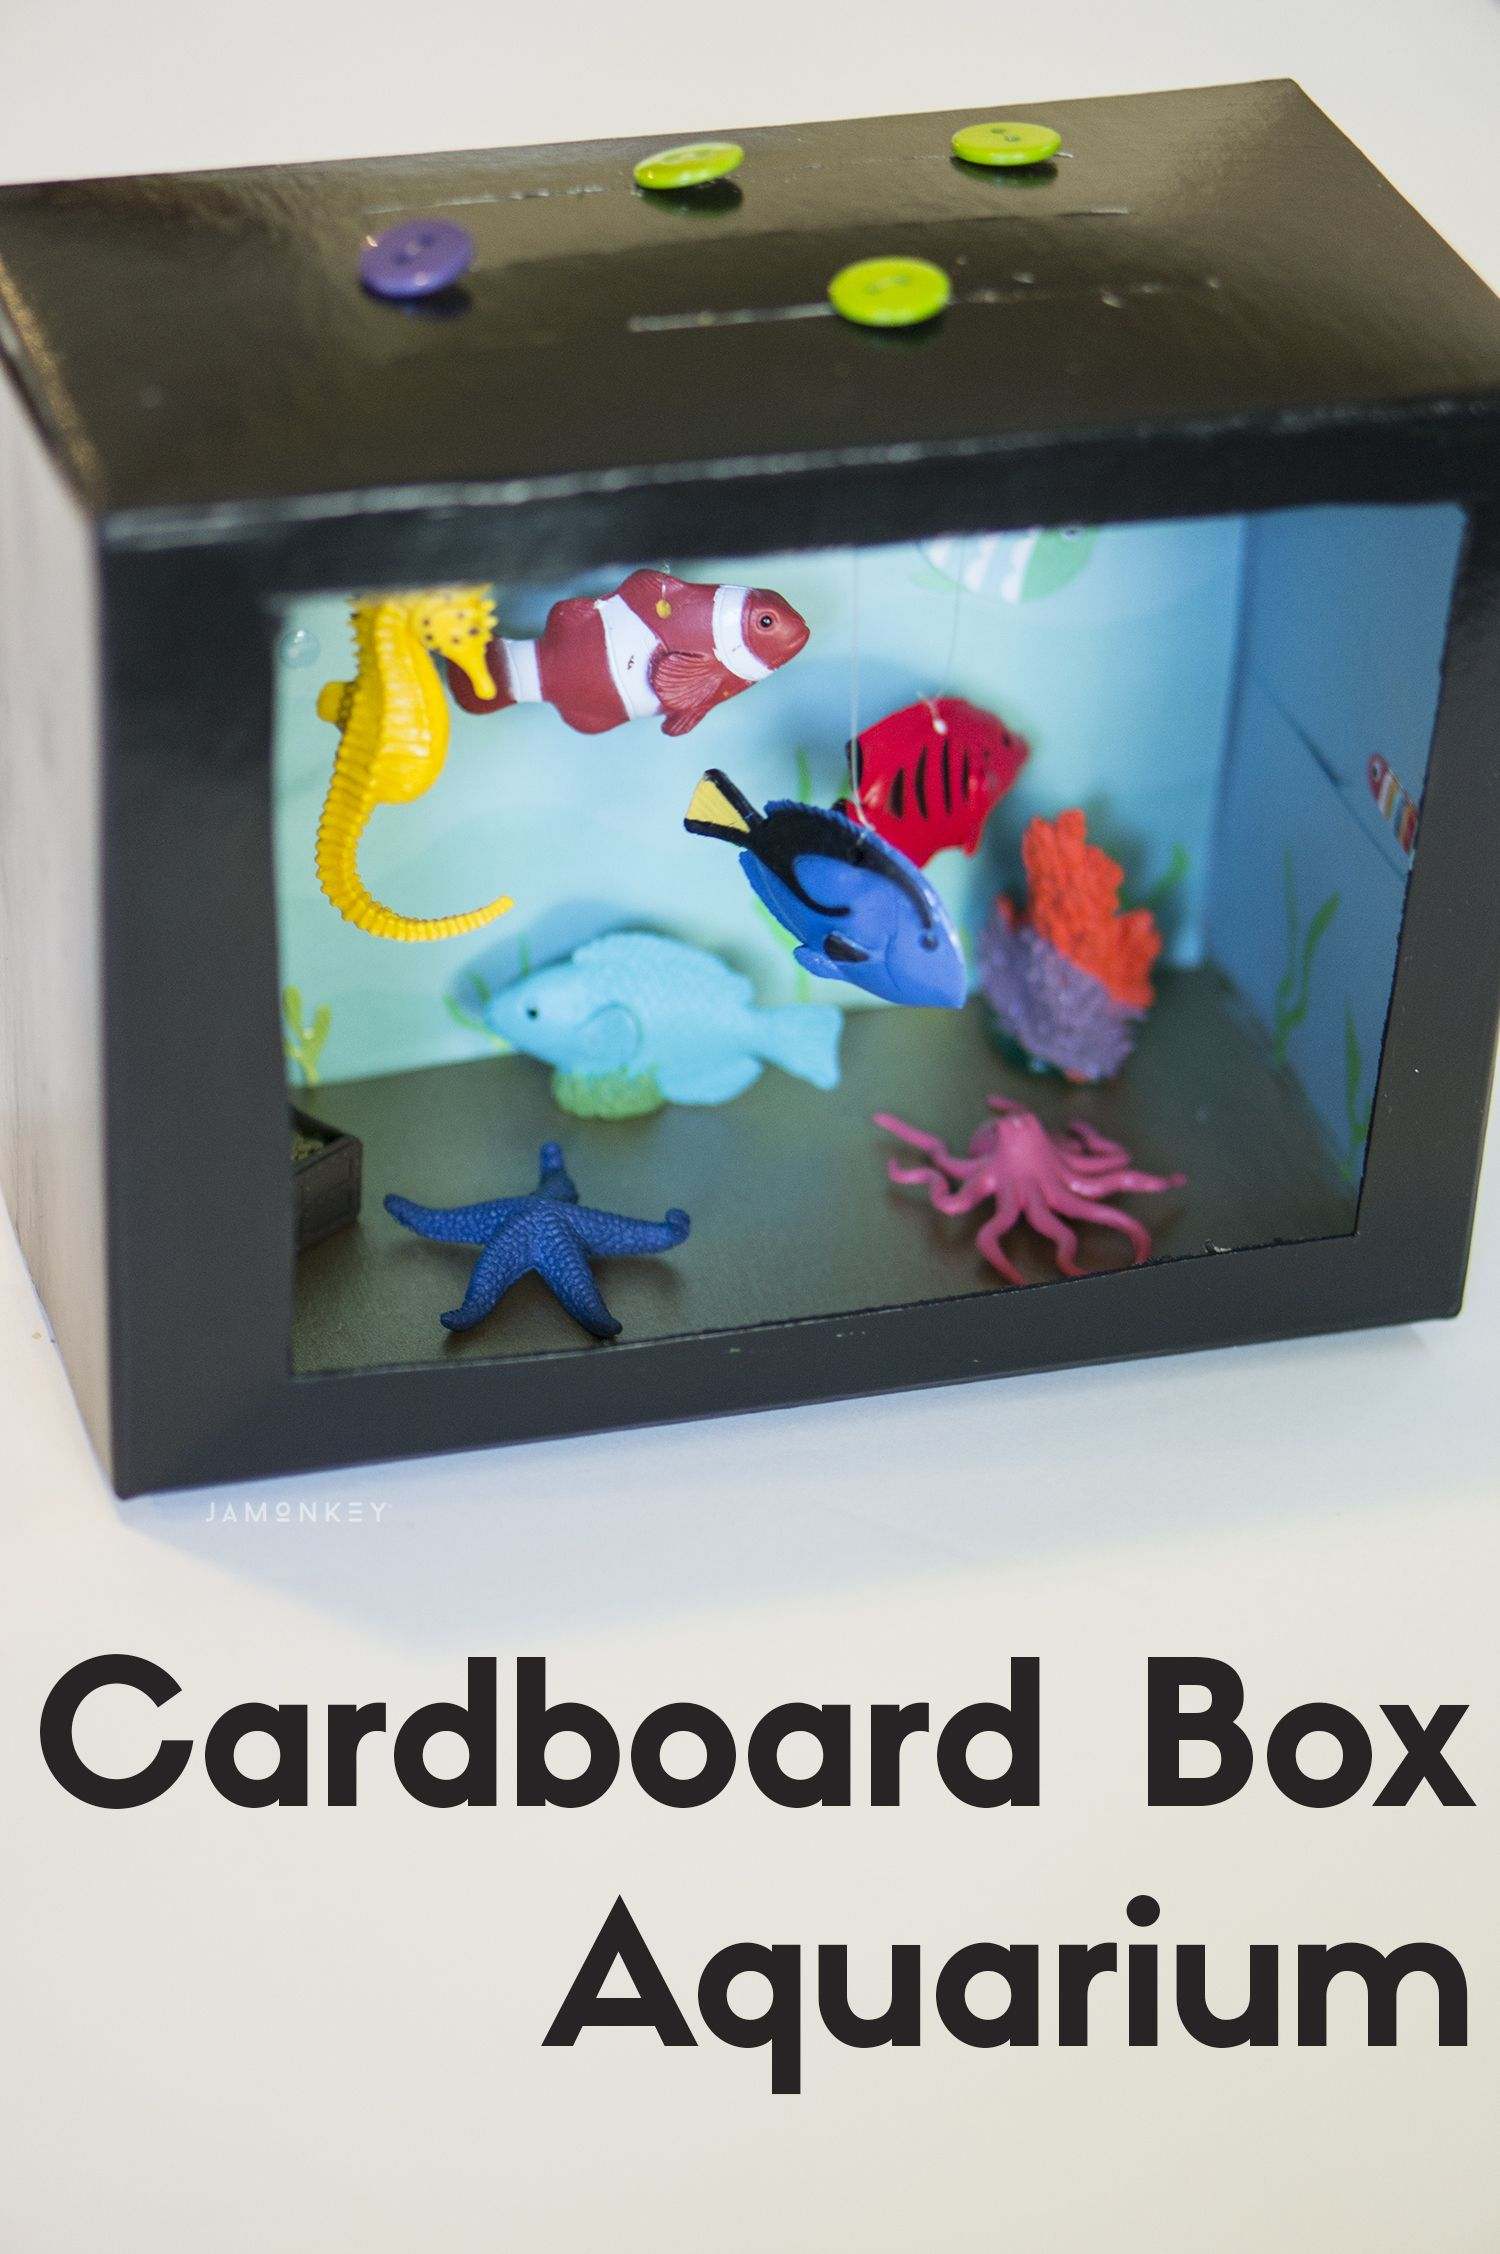 Cardboard Box Aquarium Cardboard Box Crafts Cardboard Crafts